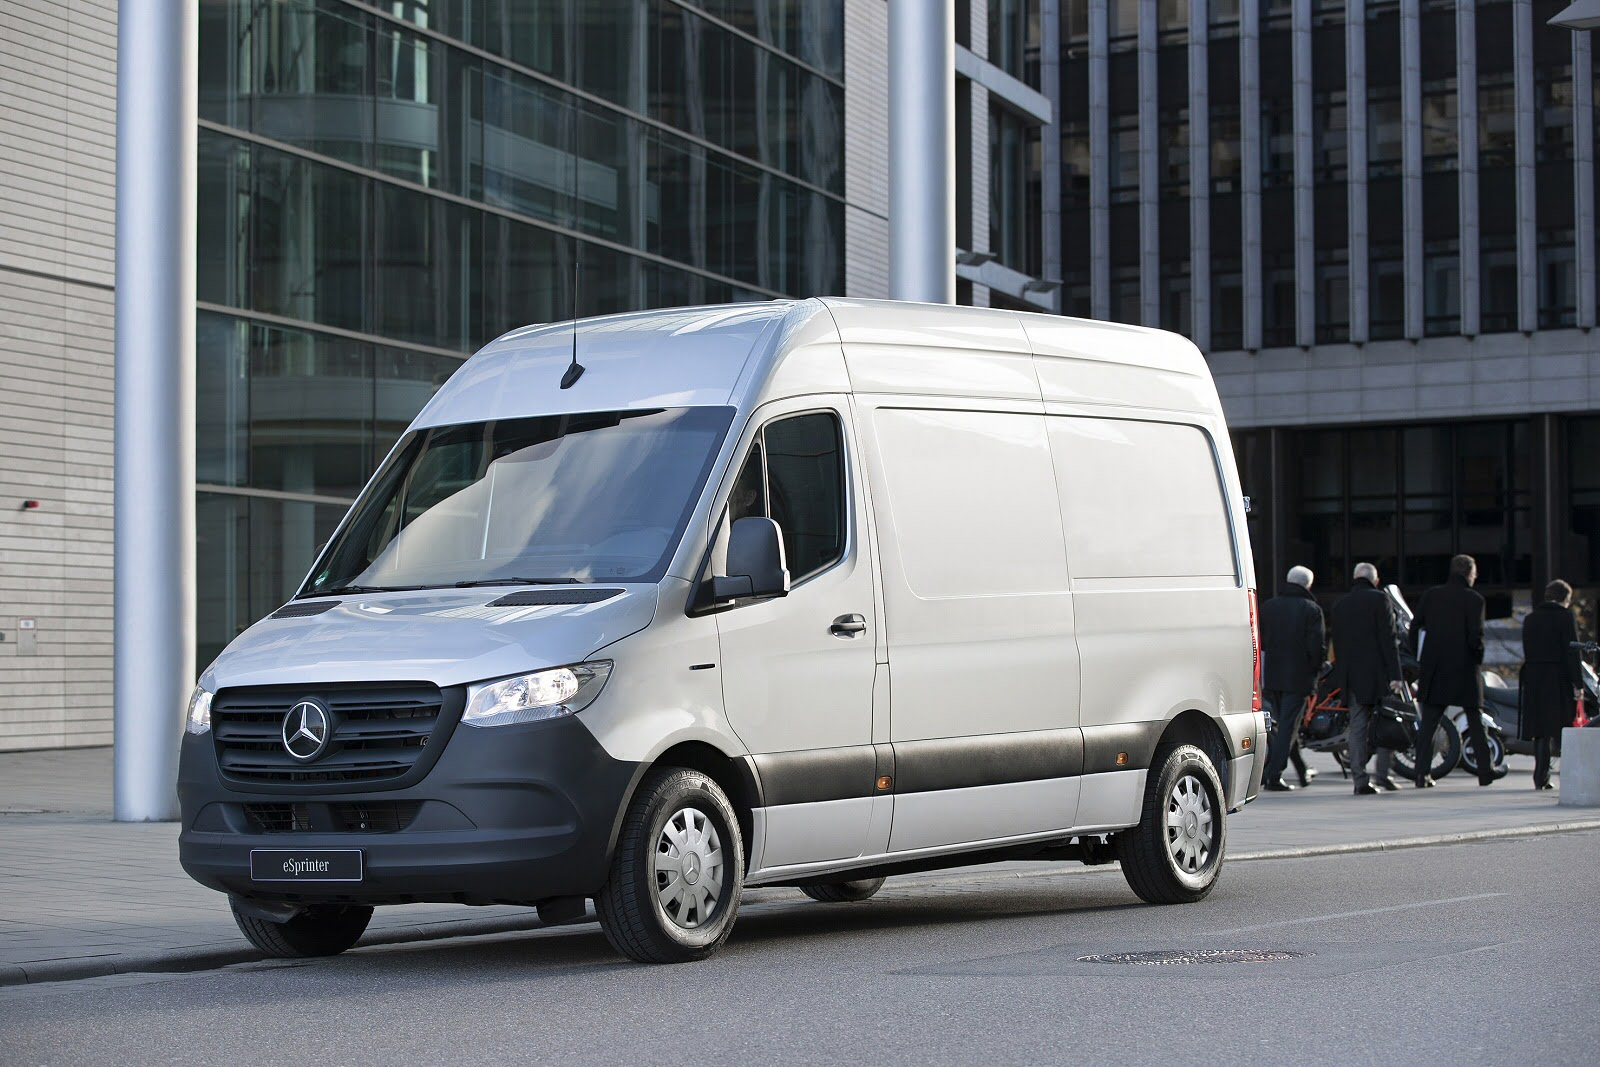 Esprinter L2 Electric Fwd